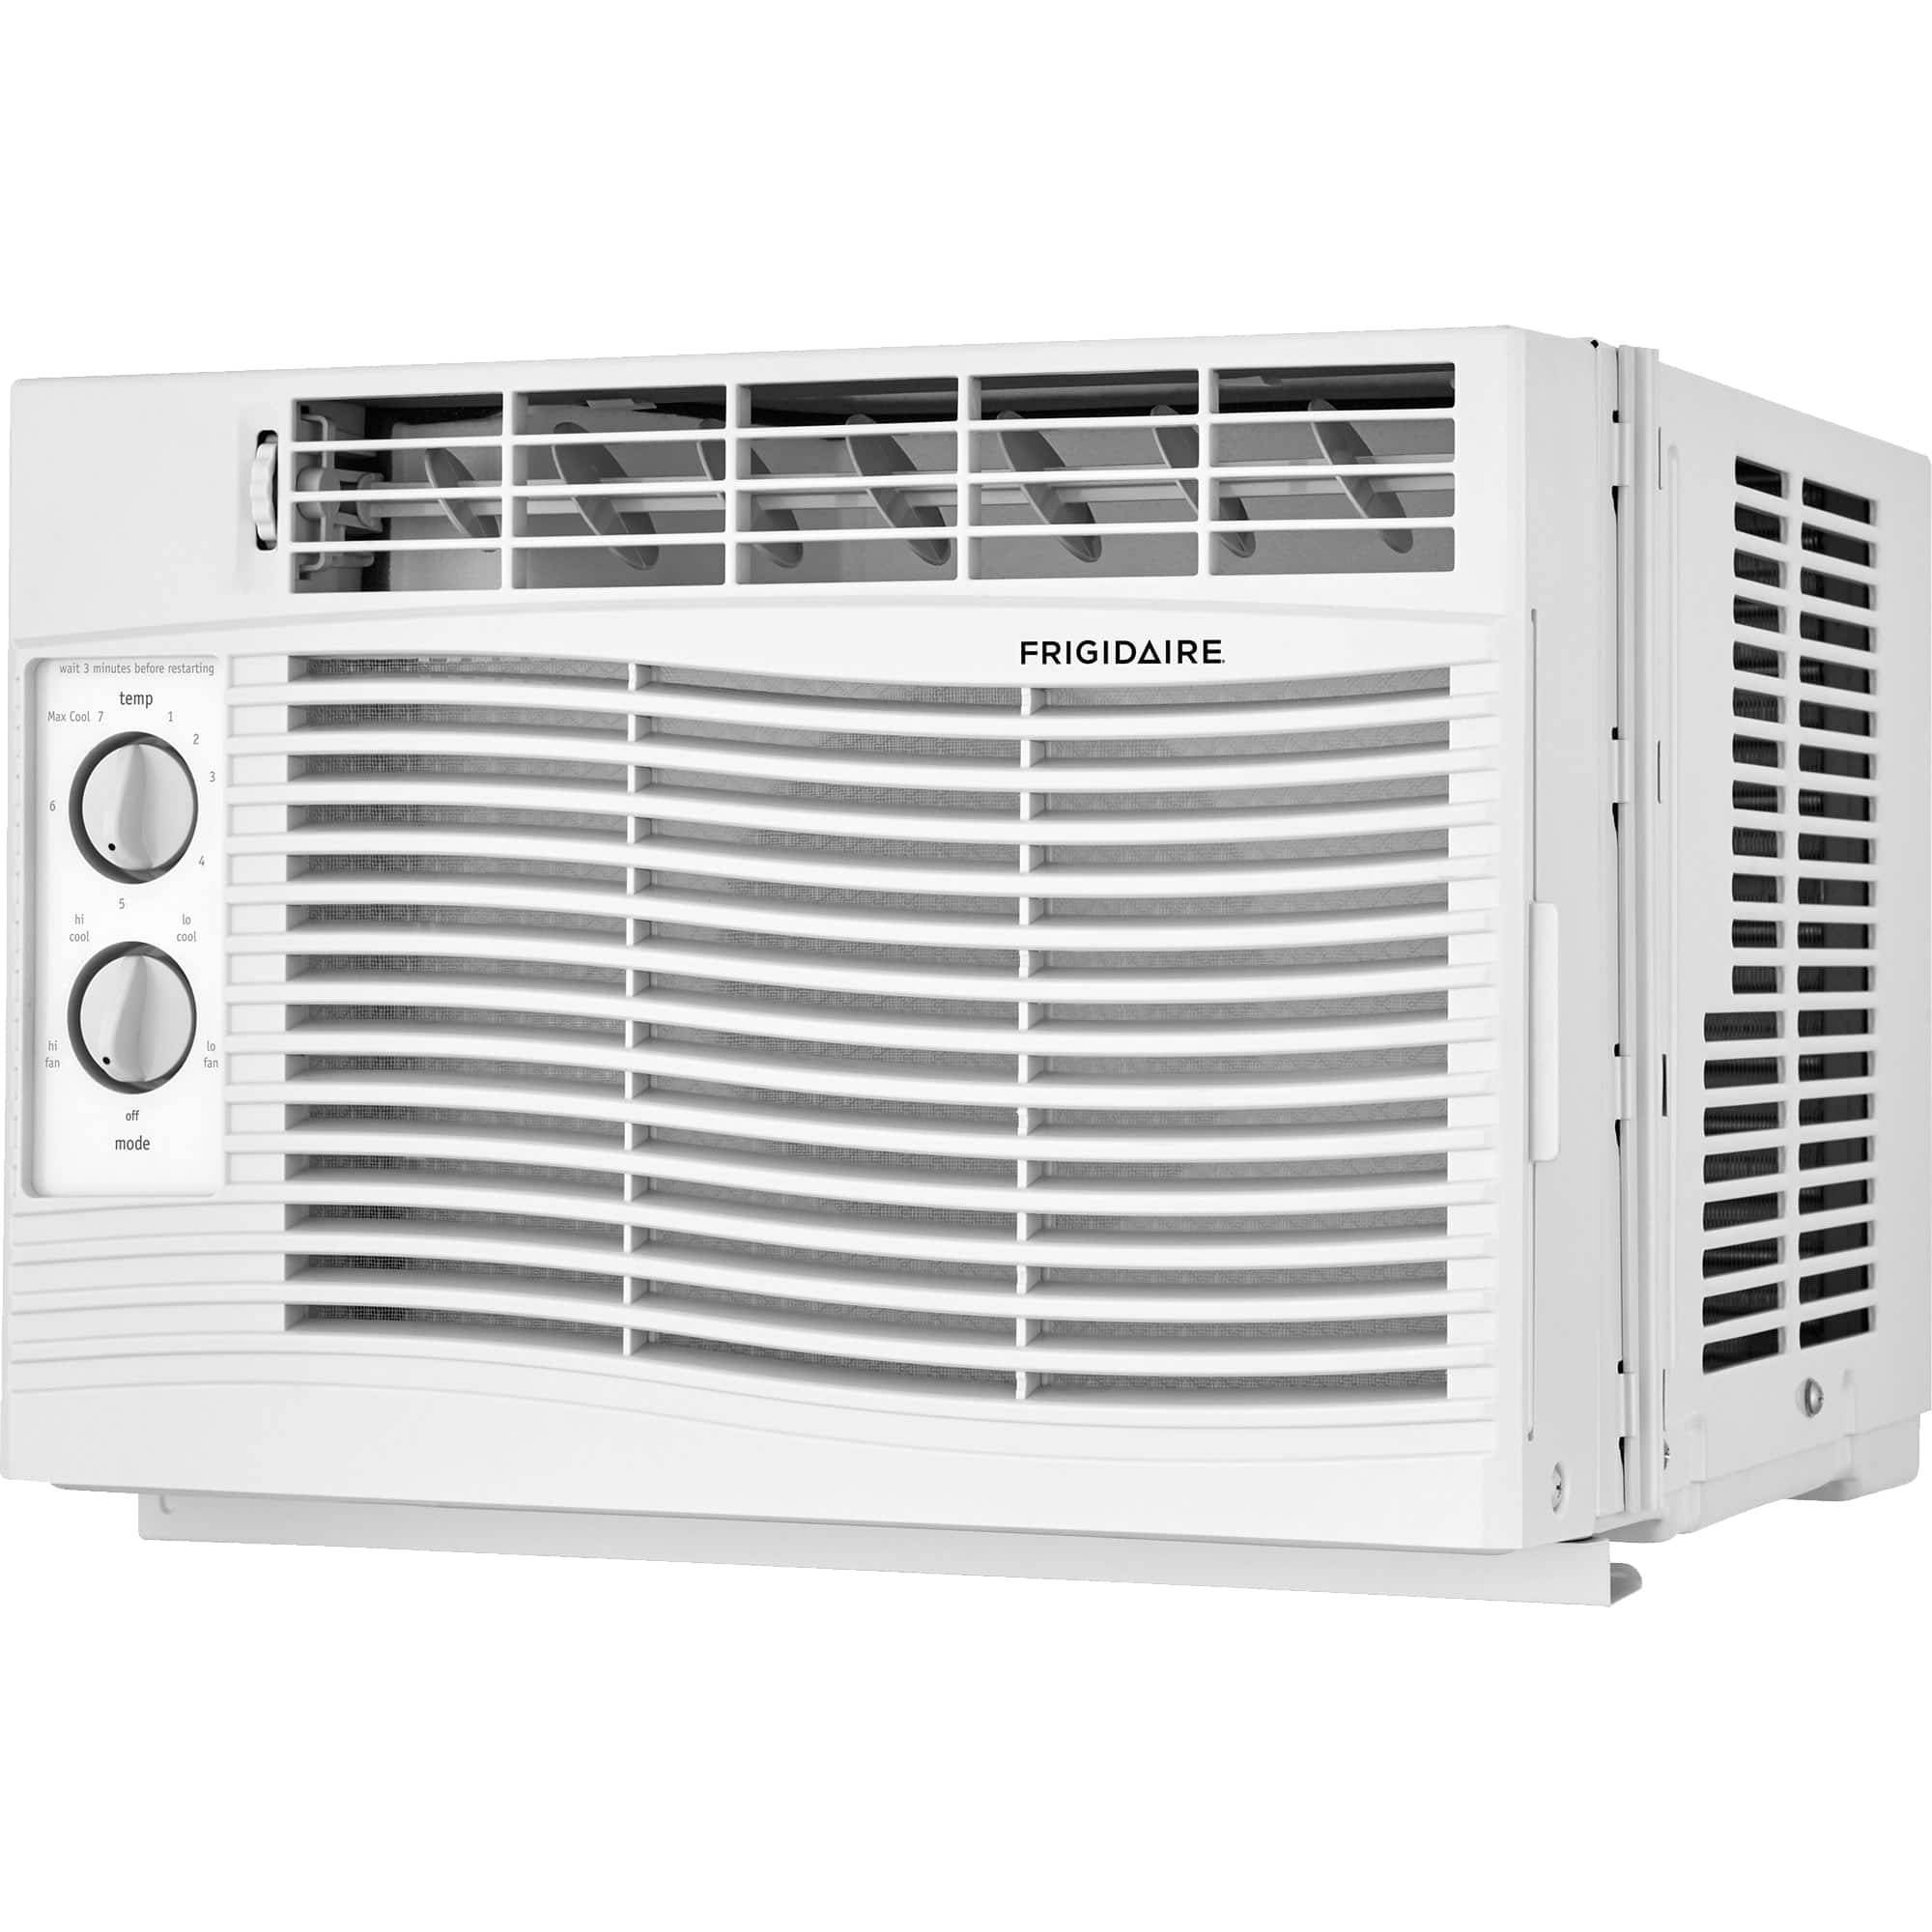 Frigidaire 5,000 BTU Window Air Conditioner $99.99 for BJ Members + Free Shipping @ BJ's